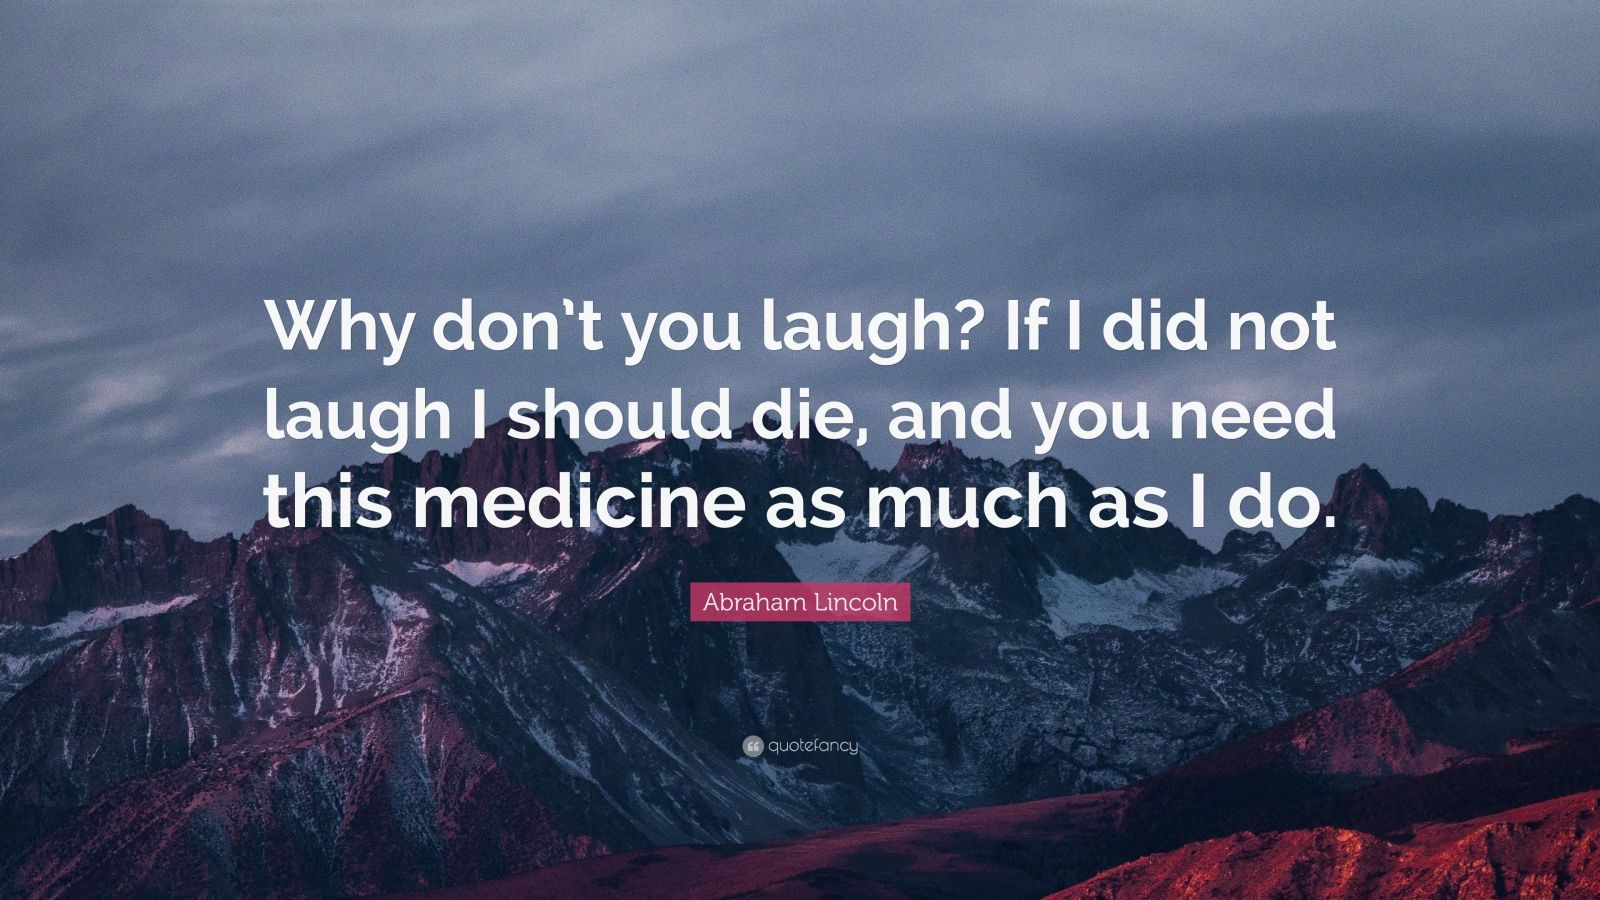 """Abraham Lincoln Quote: """"Why don't you laugh? If I did not laugh I should die, and you need this medicine as much as I do."""""""